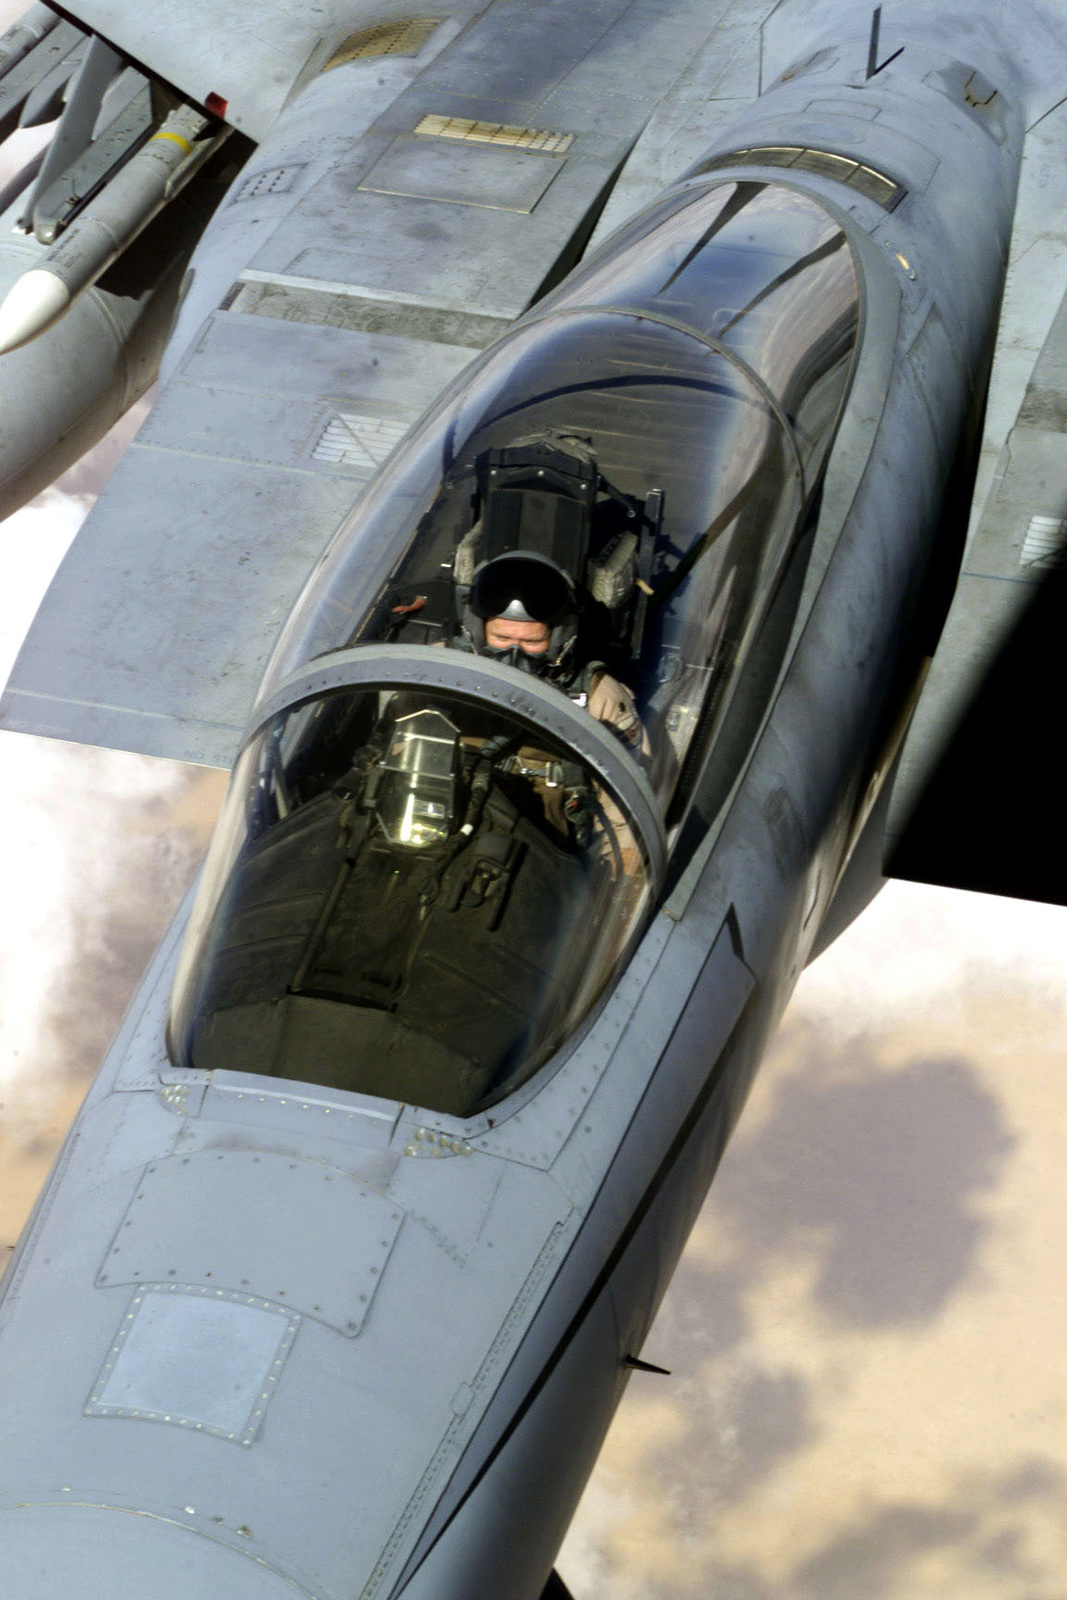 An F-15 Eagle aircraft refuels from a KC-135 Stratotanker (not shown) over Saudi Arabia in support of Operation SOUTHERN WATCH. The F-15 is part of the coalition forces of the 363rd Air Expeditionary Wing who enforce the no-fly and no-drive zone in Southern Iraq to protect and defend against Iraqi aggression